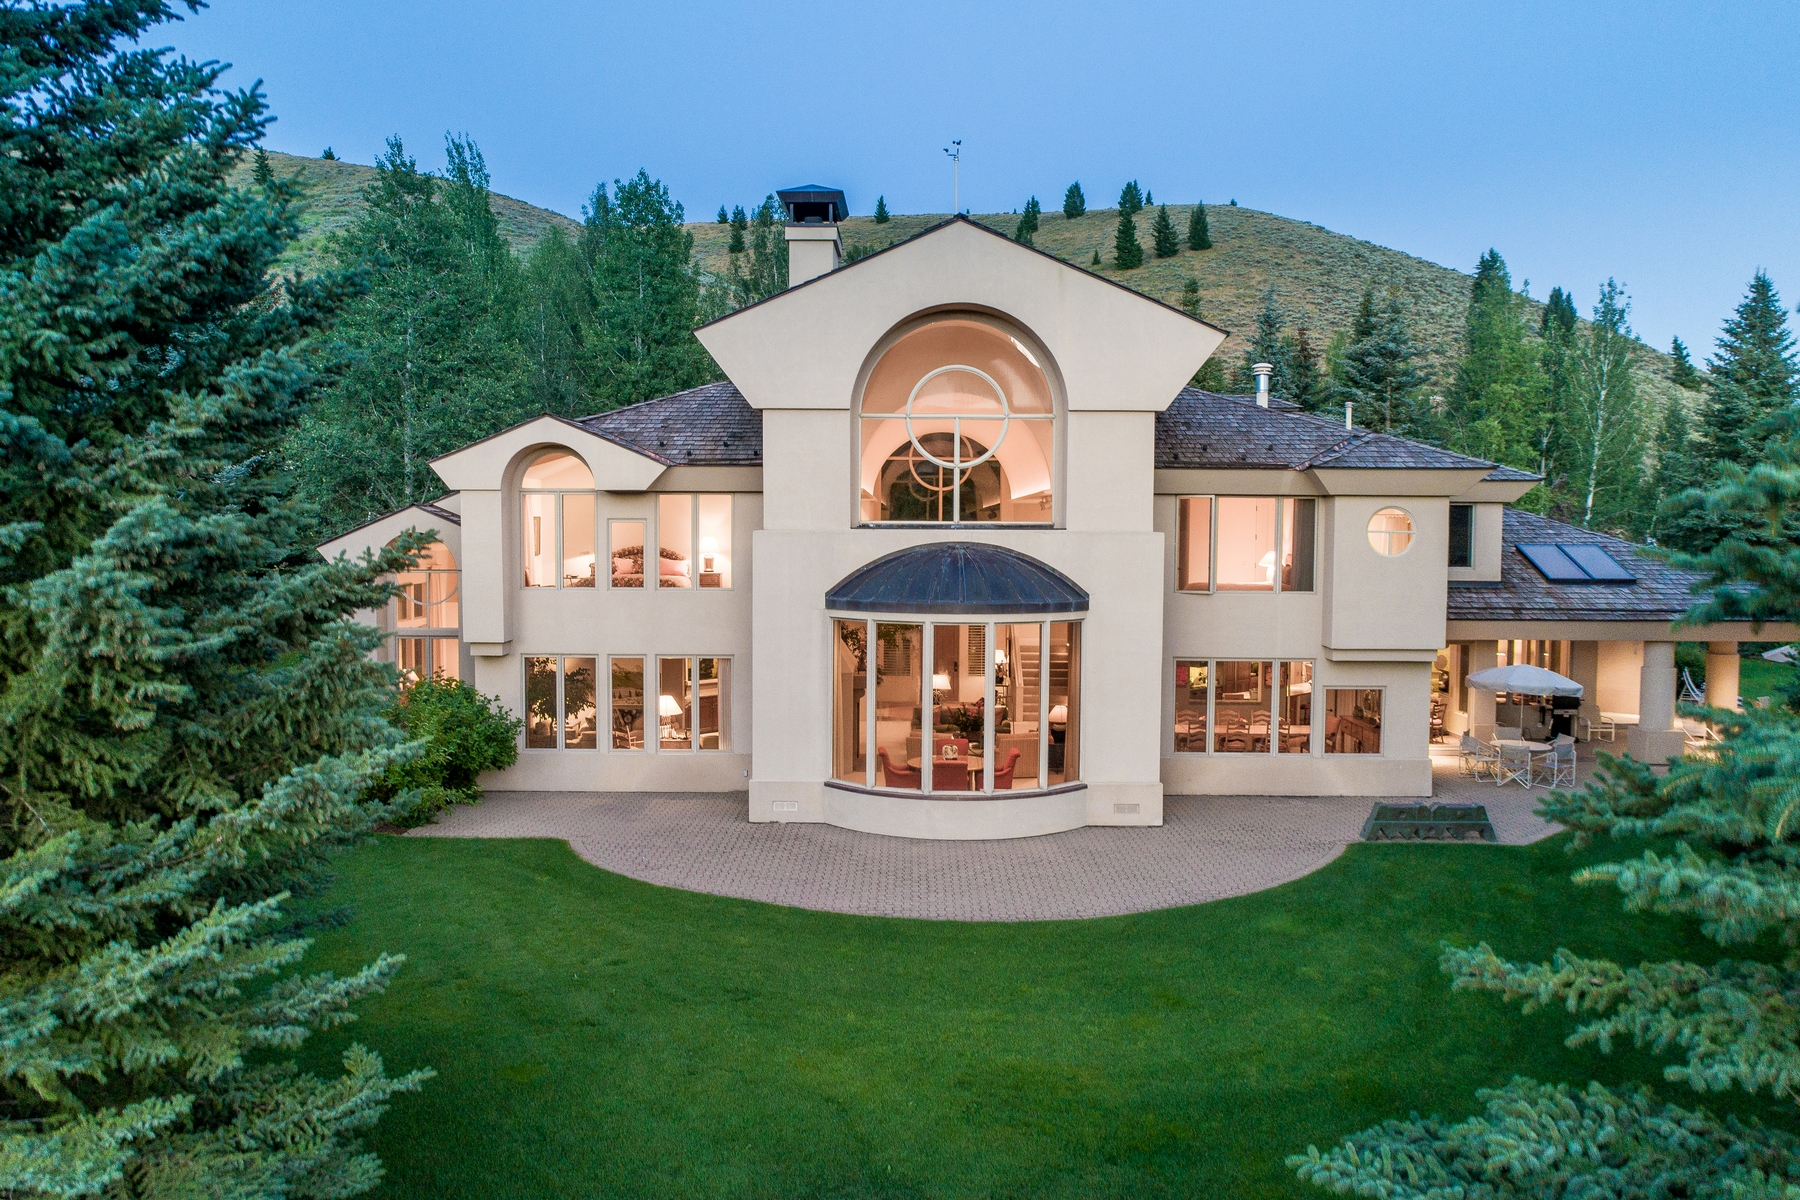 Casa Unifamiliar por un Venta en Barry Berkus Designed Home On Prime Bigwood Golf Course Property 195 S Bigwood Dr S, Ketchum, Idaho, 83340 Estados Unidos